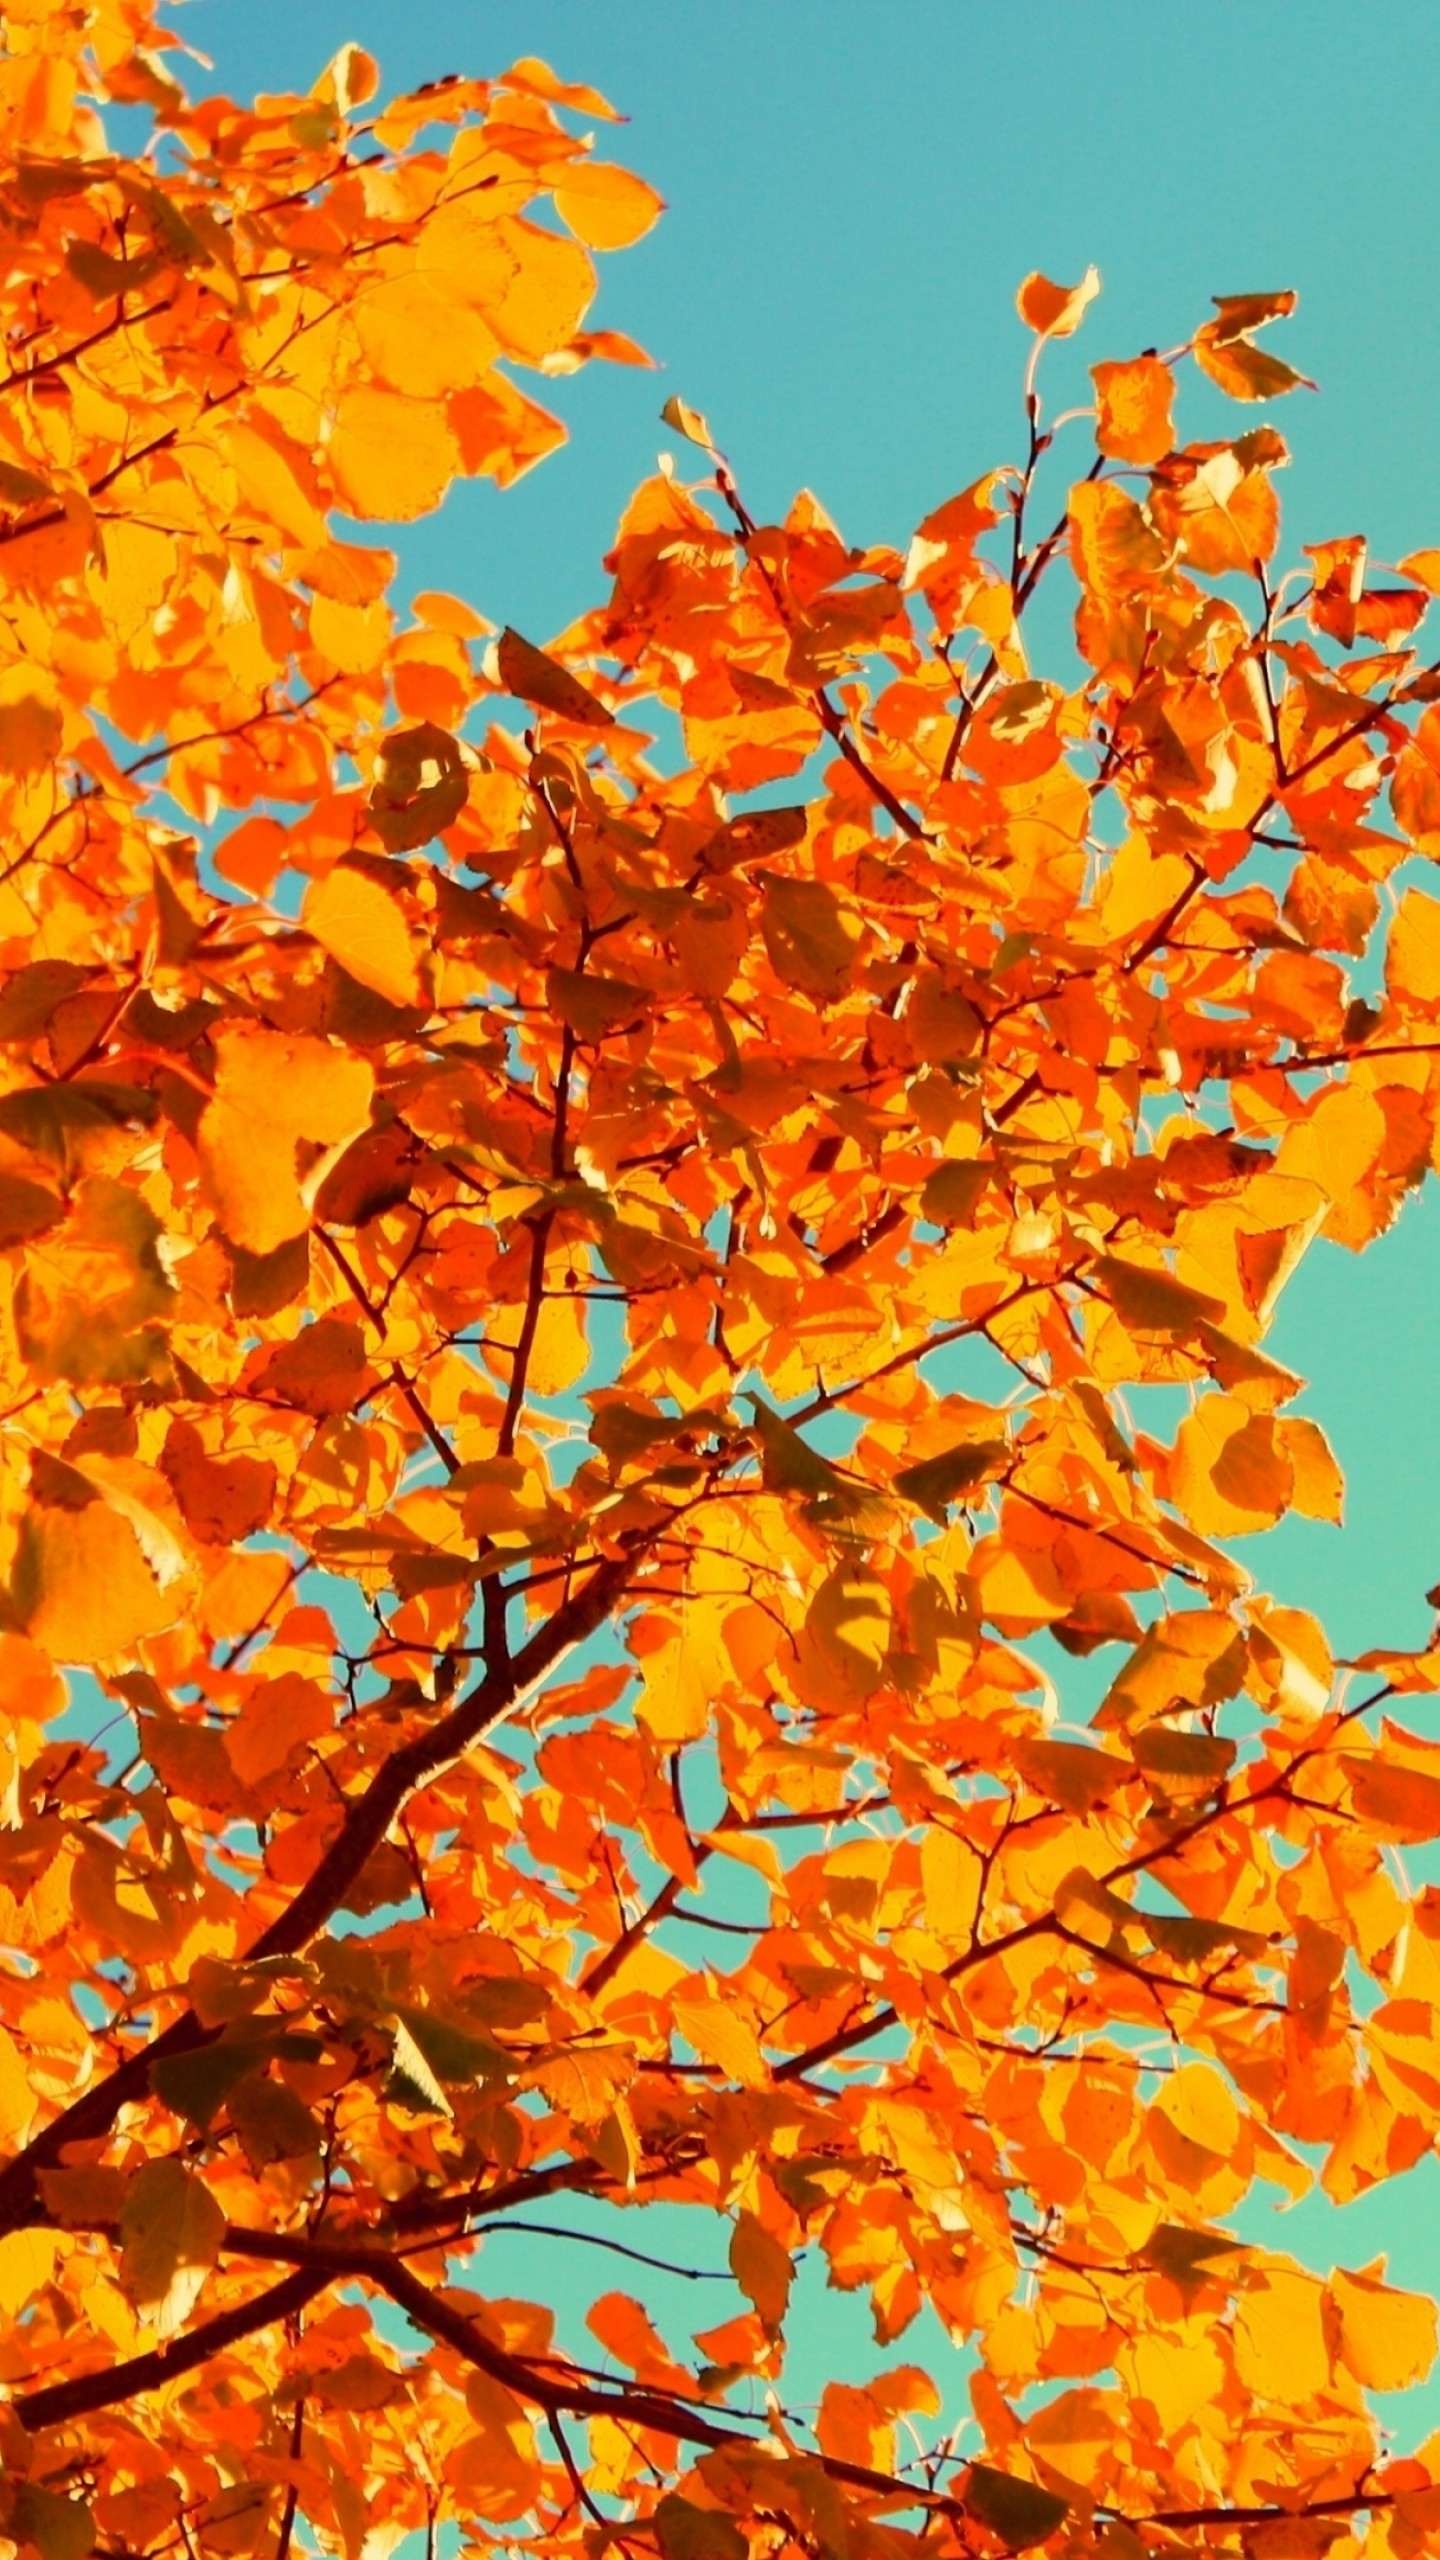 Fall Leaves Hd Desktop Wallpaper Wallpaper Tree 5k 4k Wallpaper Sky Autumn Yellow